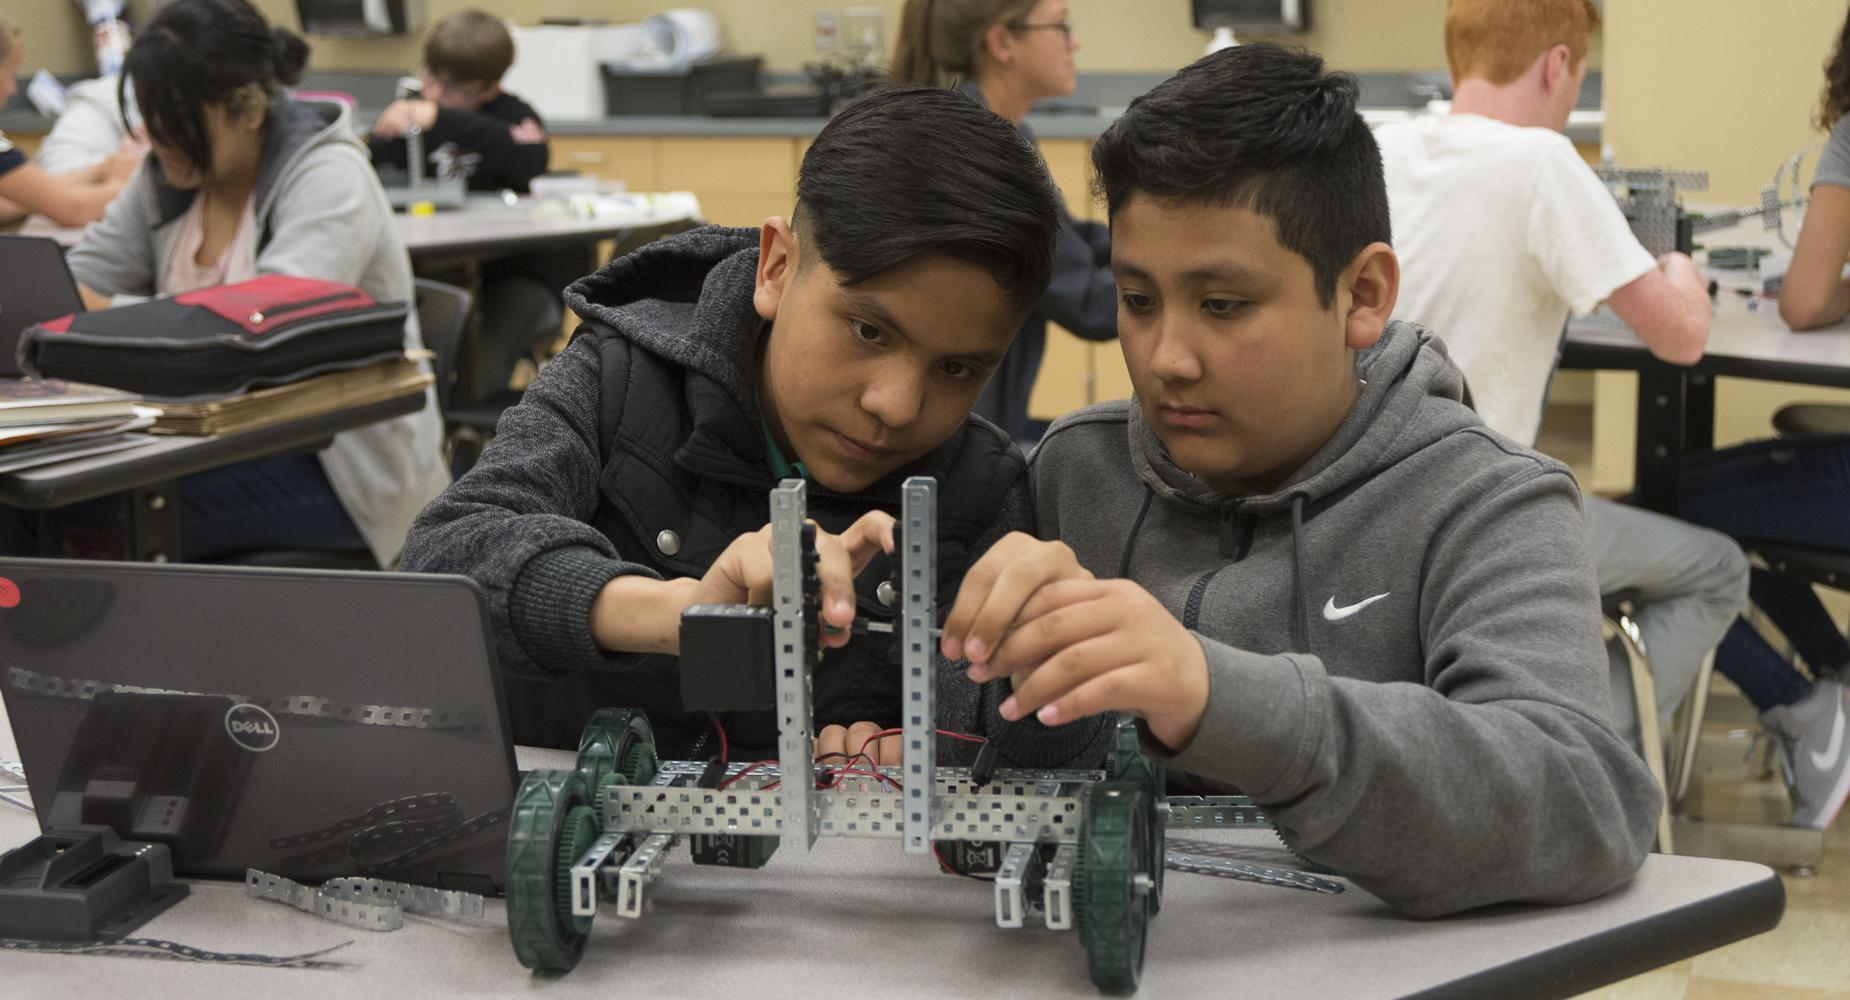 Two boys work on a robotics project